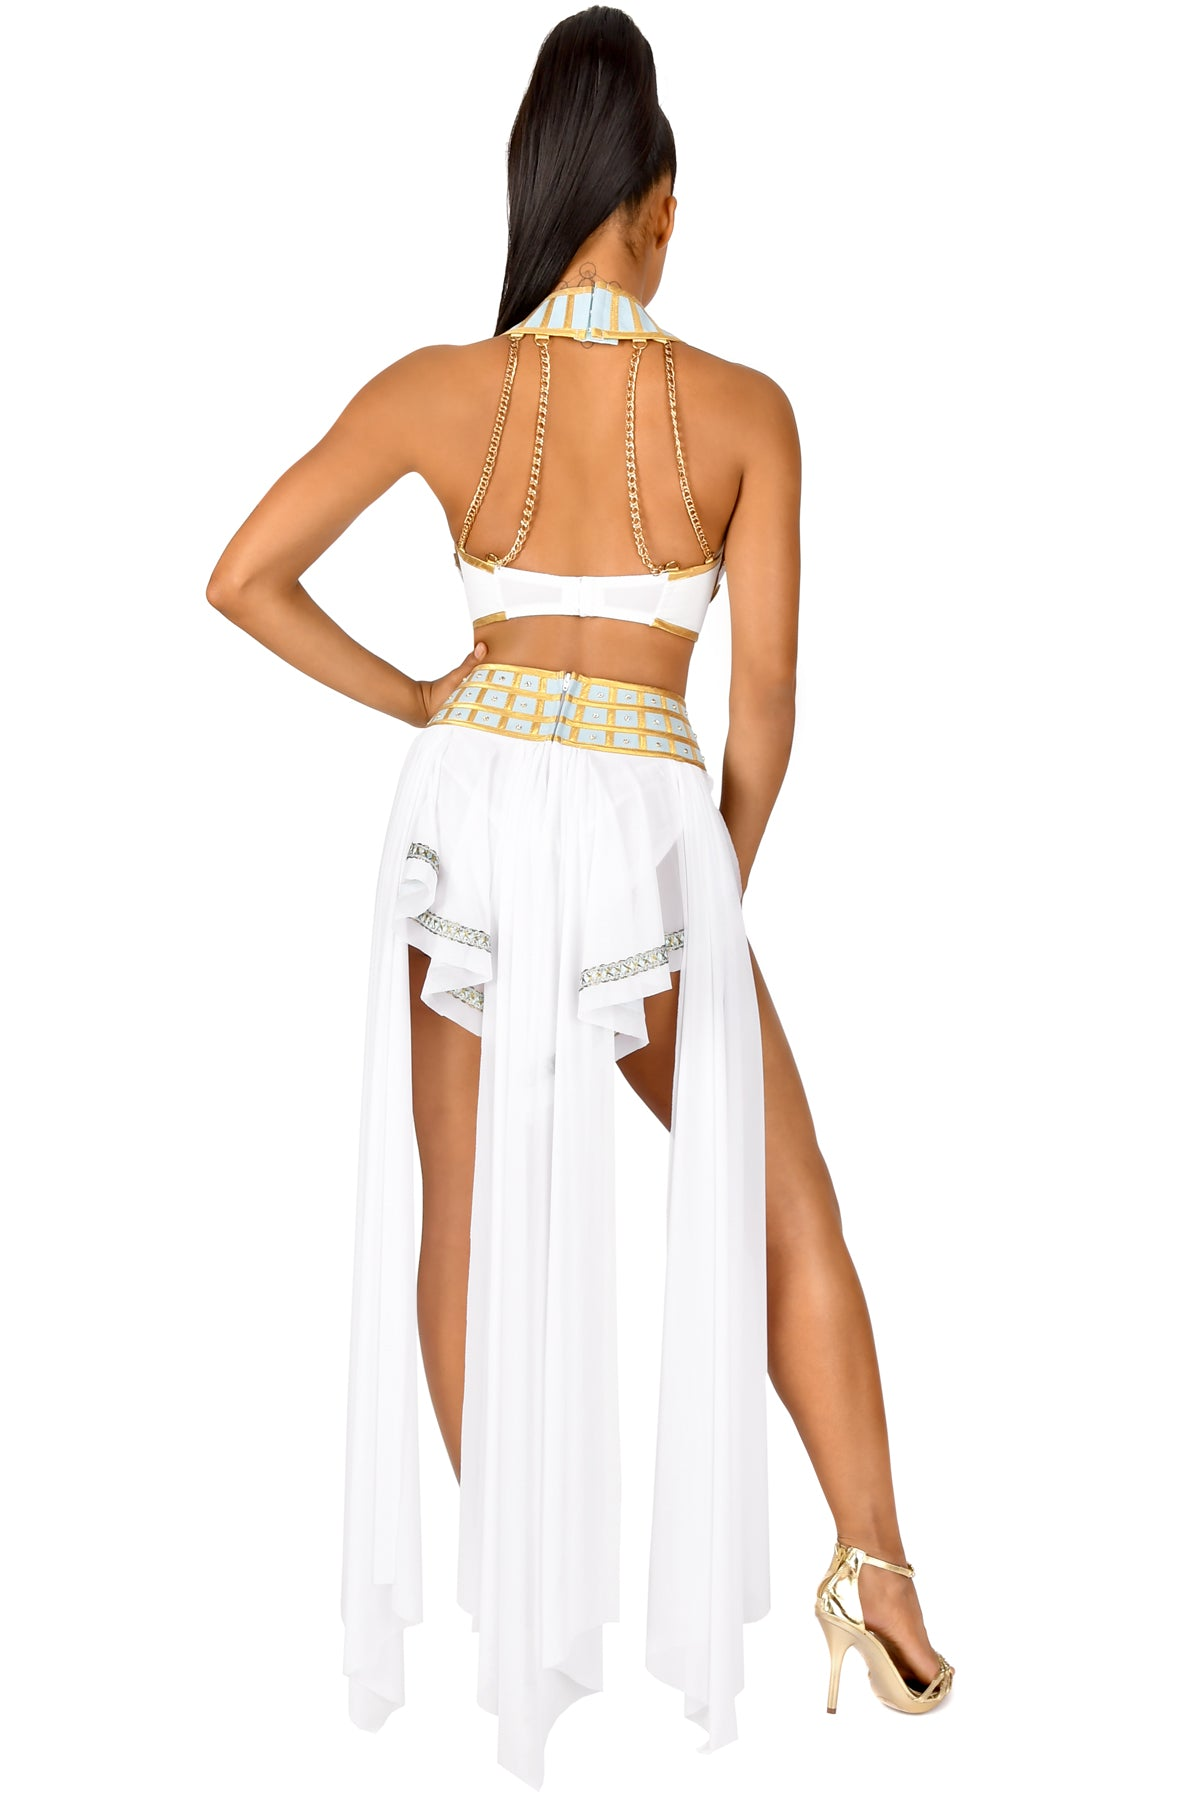 Queen of De Nile High-Waisted Chain Skirt